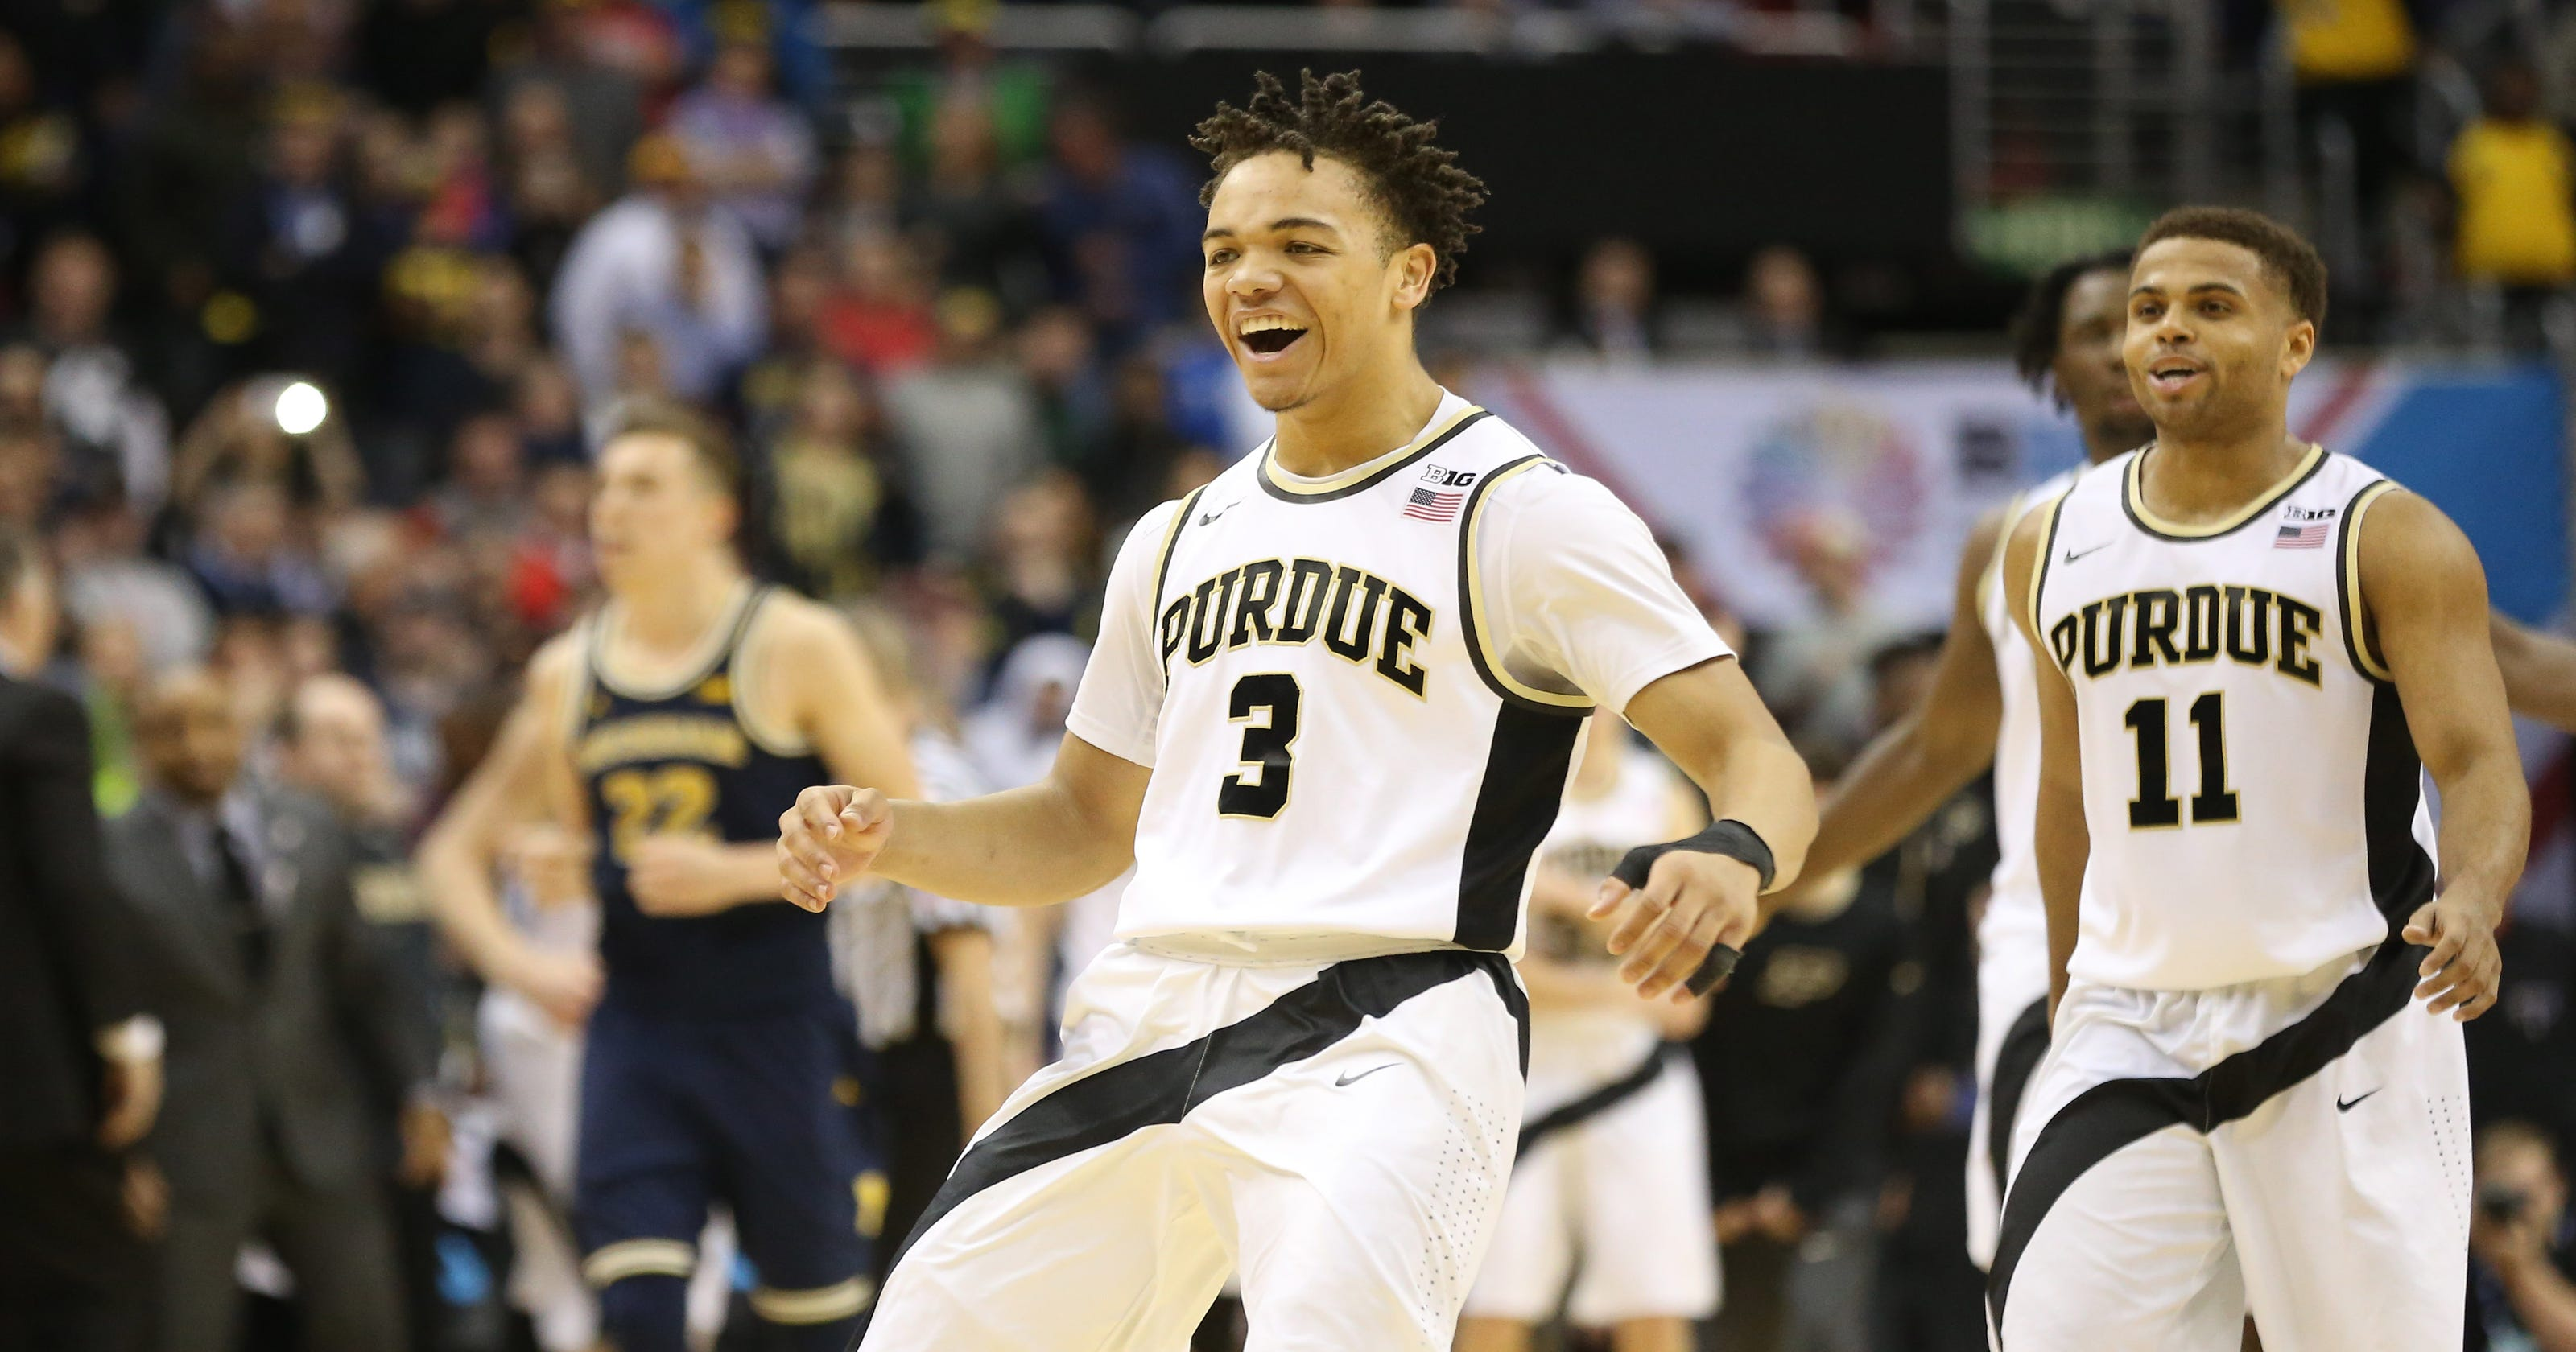 Doyel Fearless And Bowlegged Carsen Edwards Gives Purdue